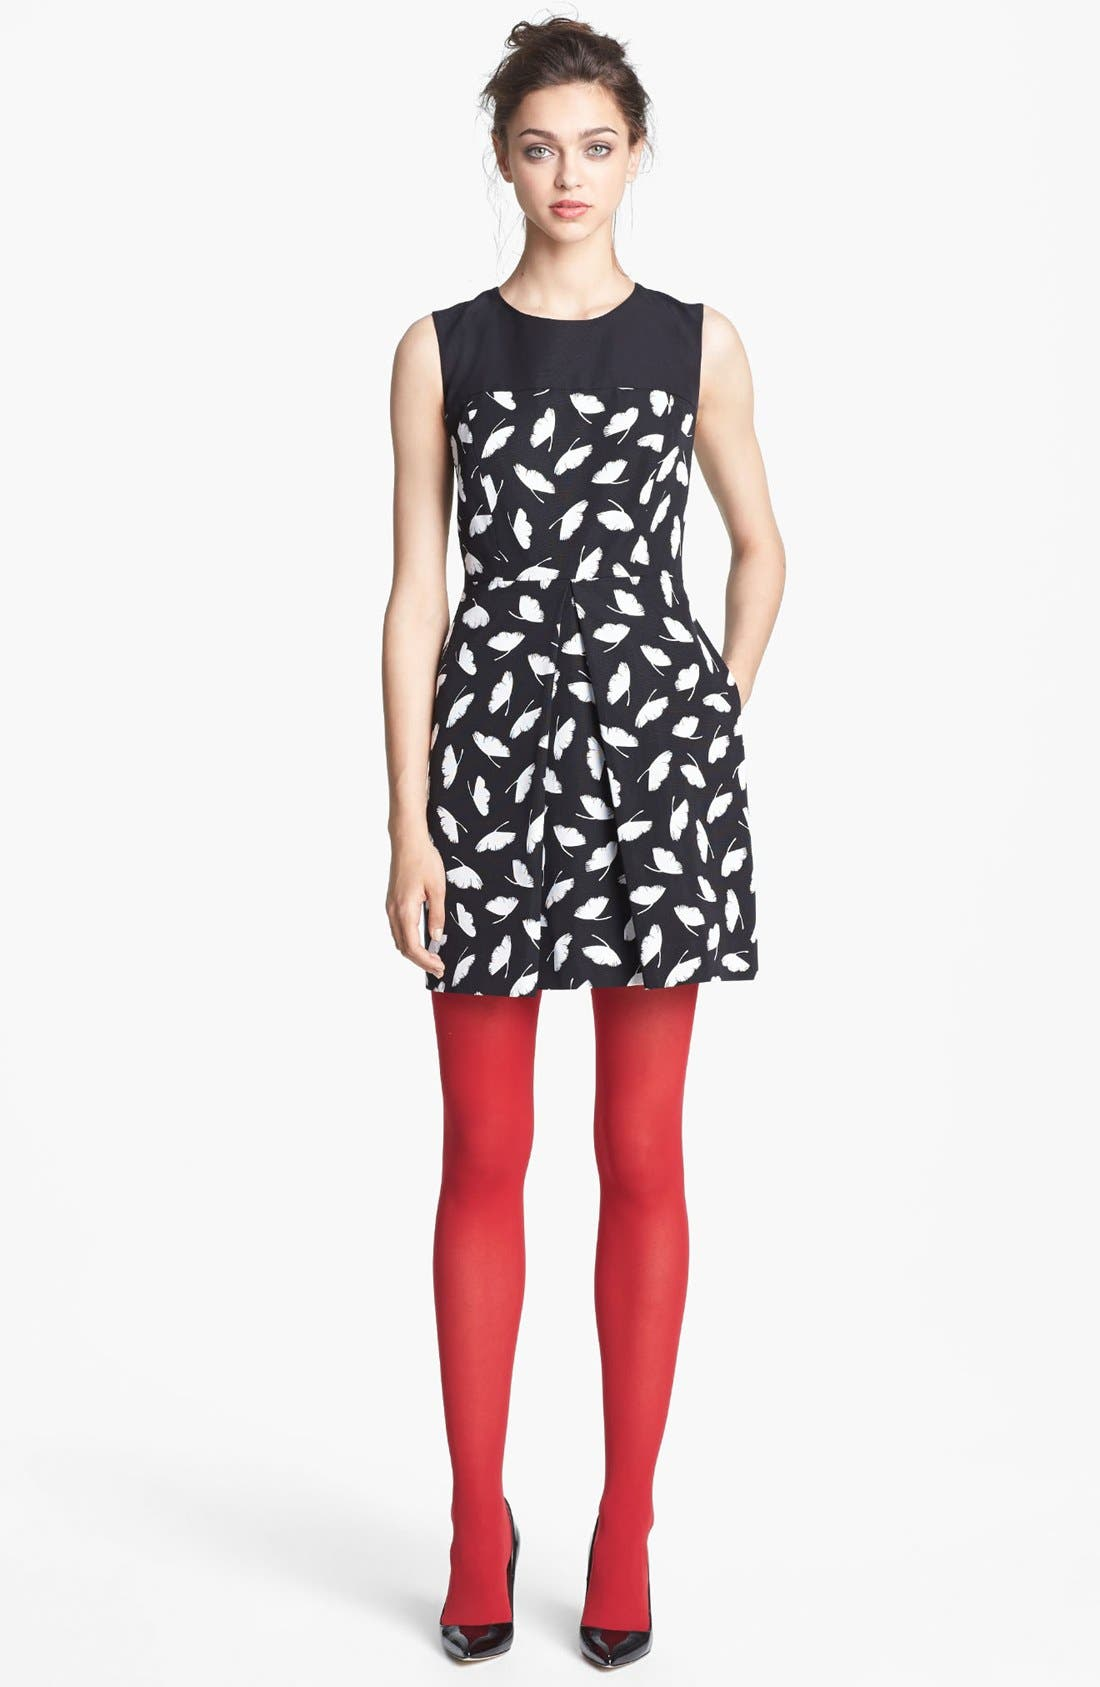 Alternate Image 1 Selected - Miss Wu 'Delicate Leaf' Print Dress (Nordstrom Exclusive)